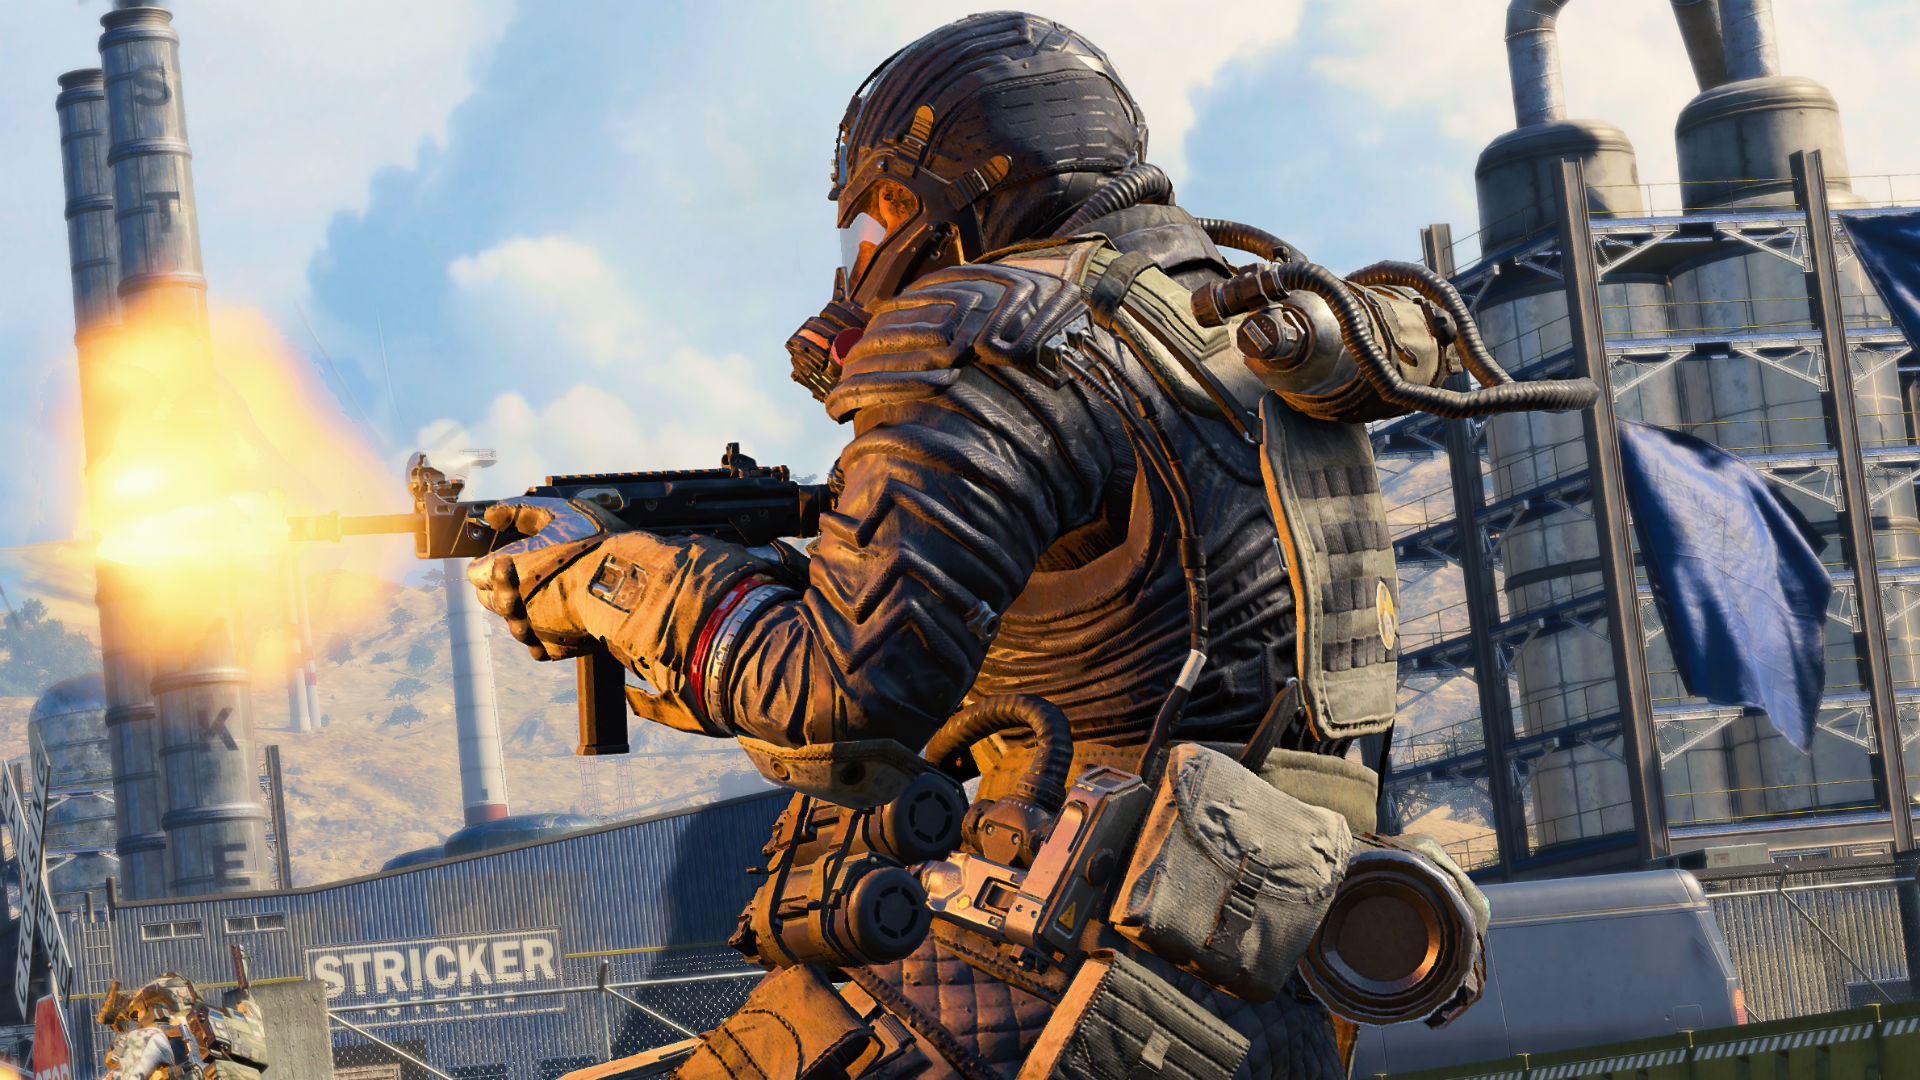 Call Of Duty Black Ops 4 Specialists Every Character And Their Abilities Revealed Pcgamesn